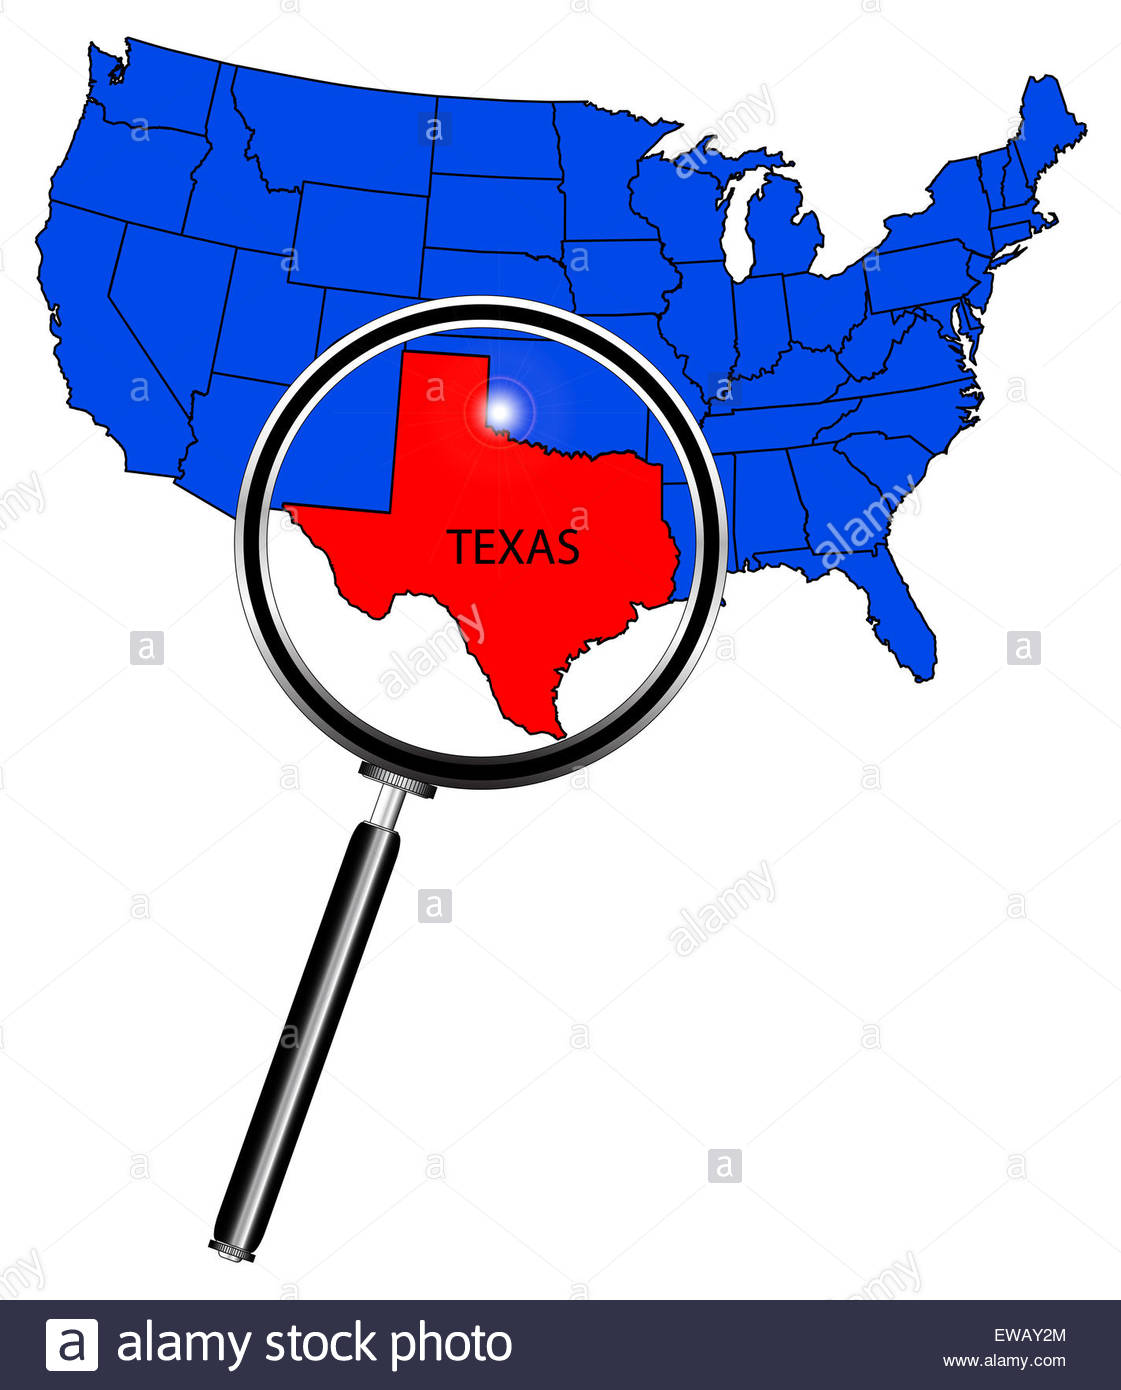 Map Of America Clipart.Texas Map Clipart Free Download Best Texas Map Clipart On